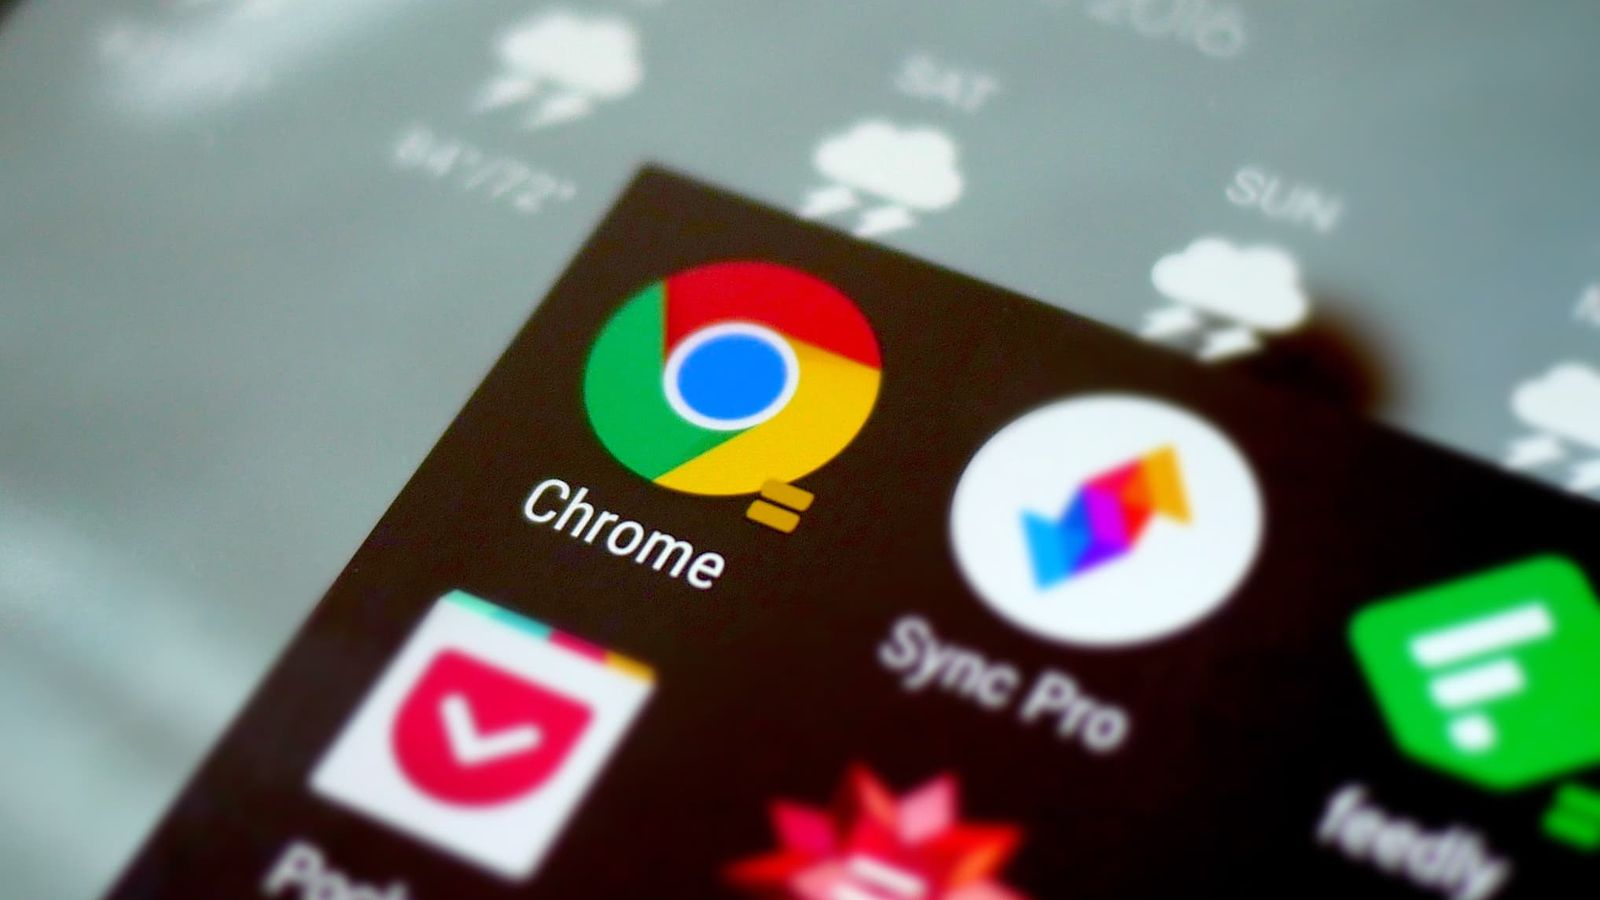 Google Chrome on Android Security Flaw Patched After Three Years